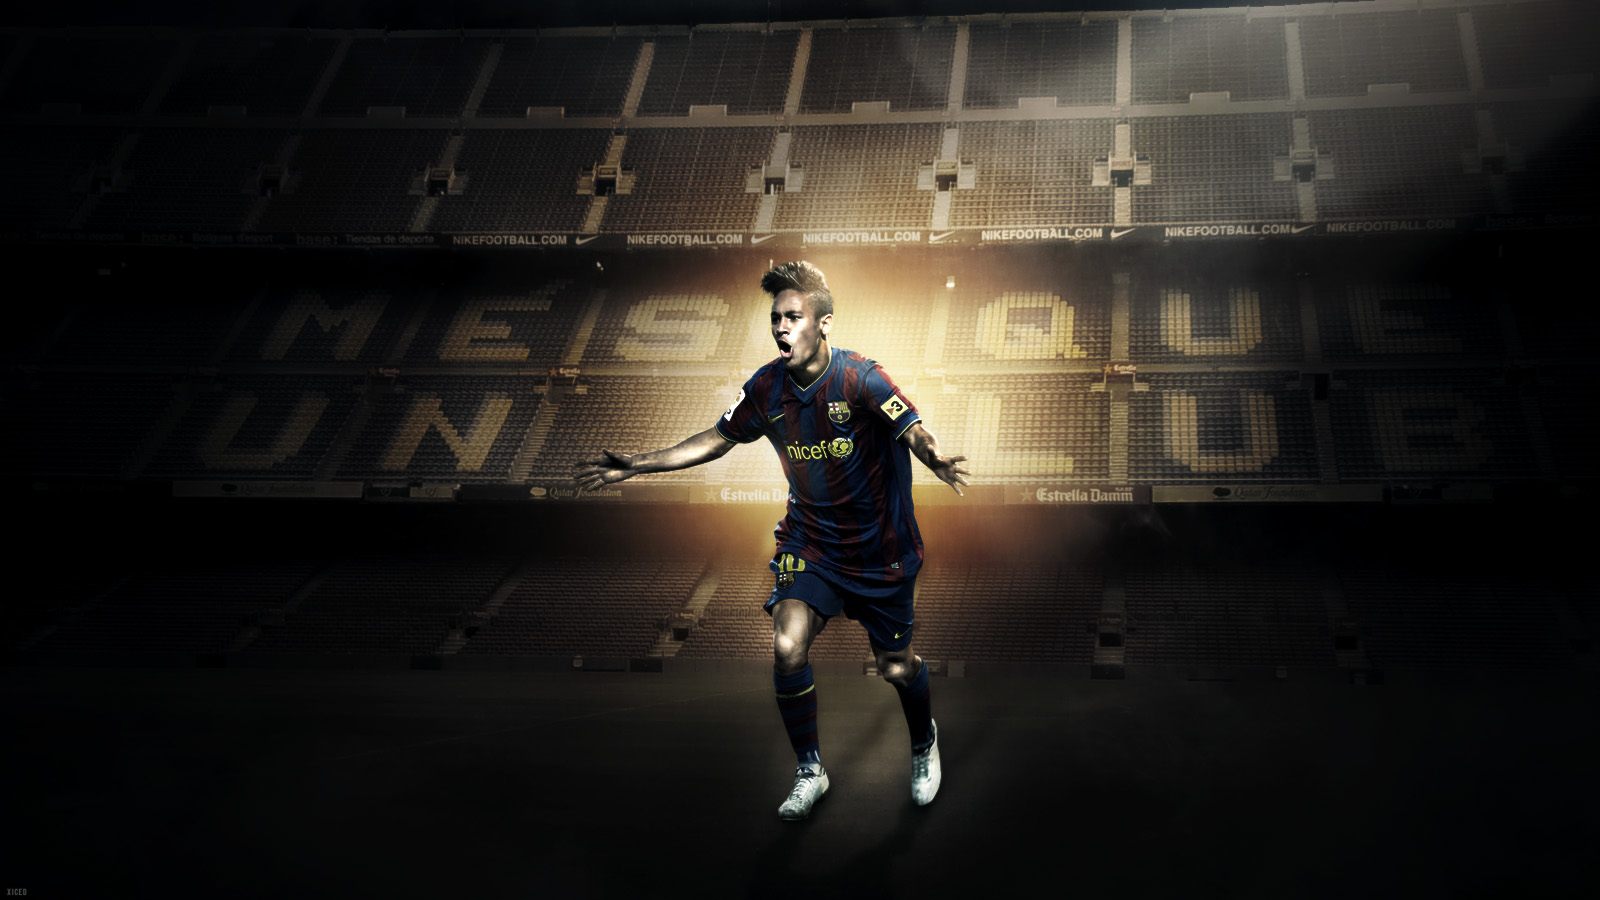 Neymar wallpaper - FC Barcelona #10